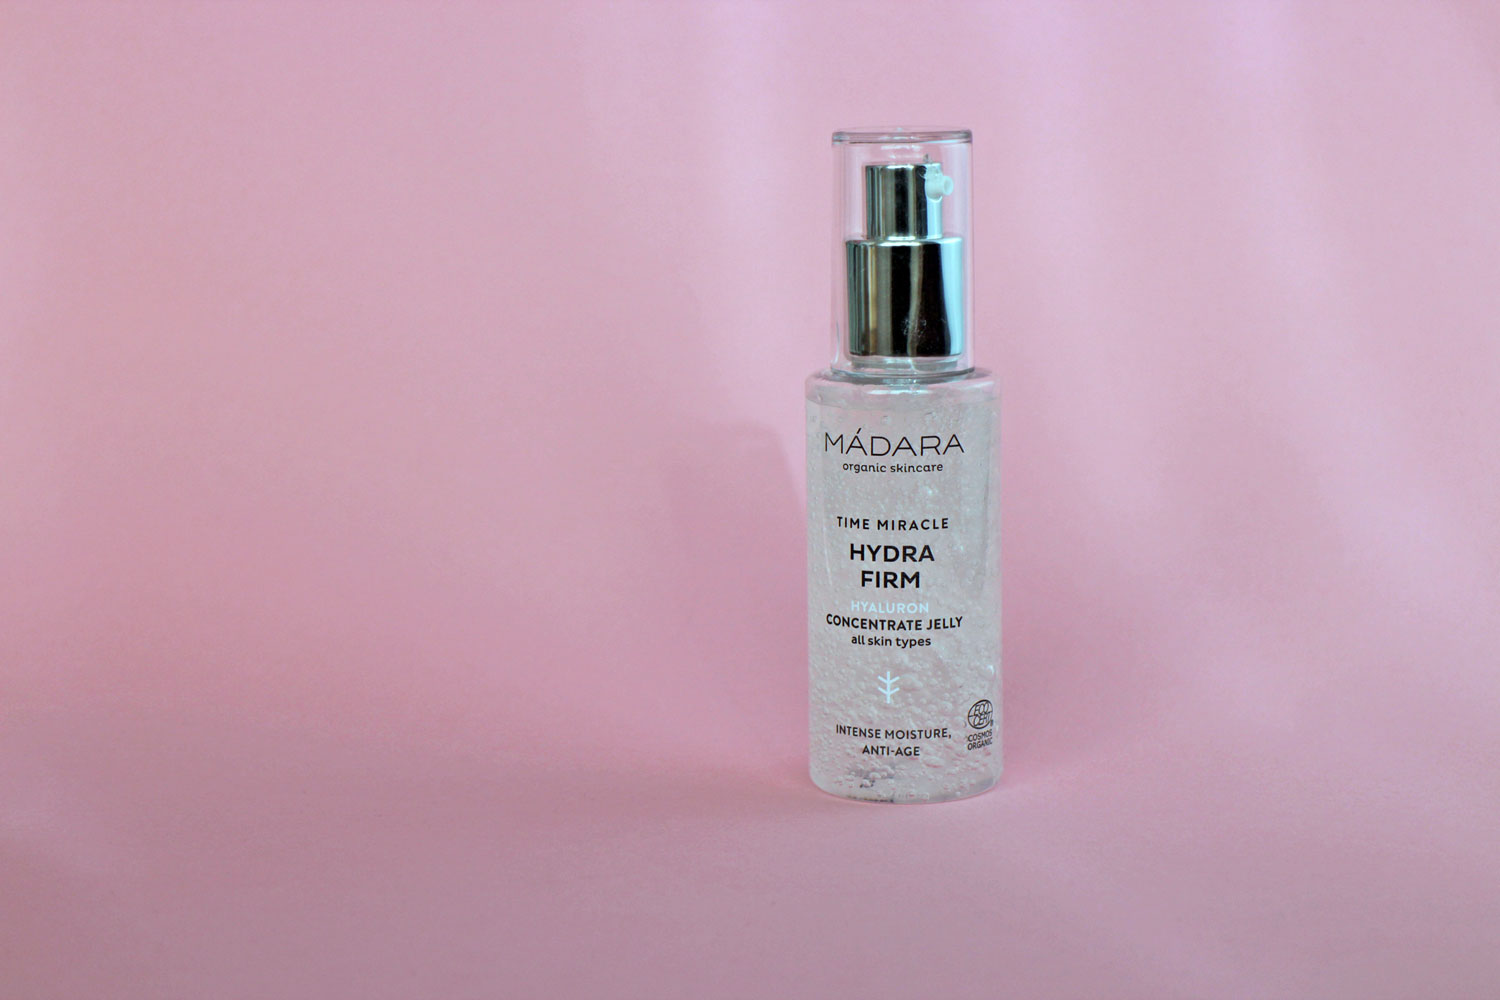 Madara Hydra Firm Concentrate Jelly